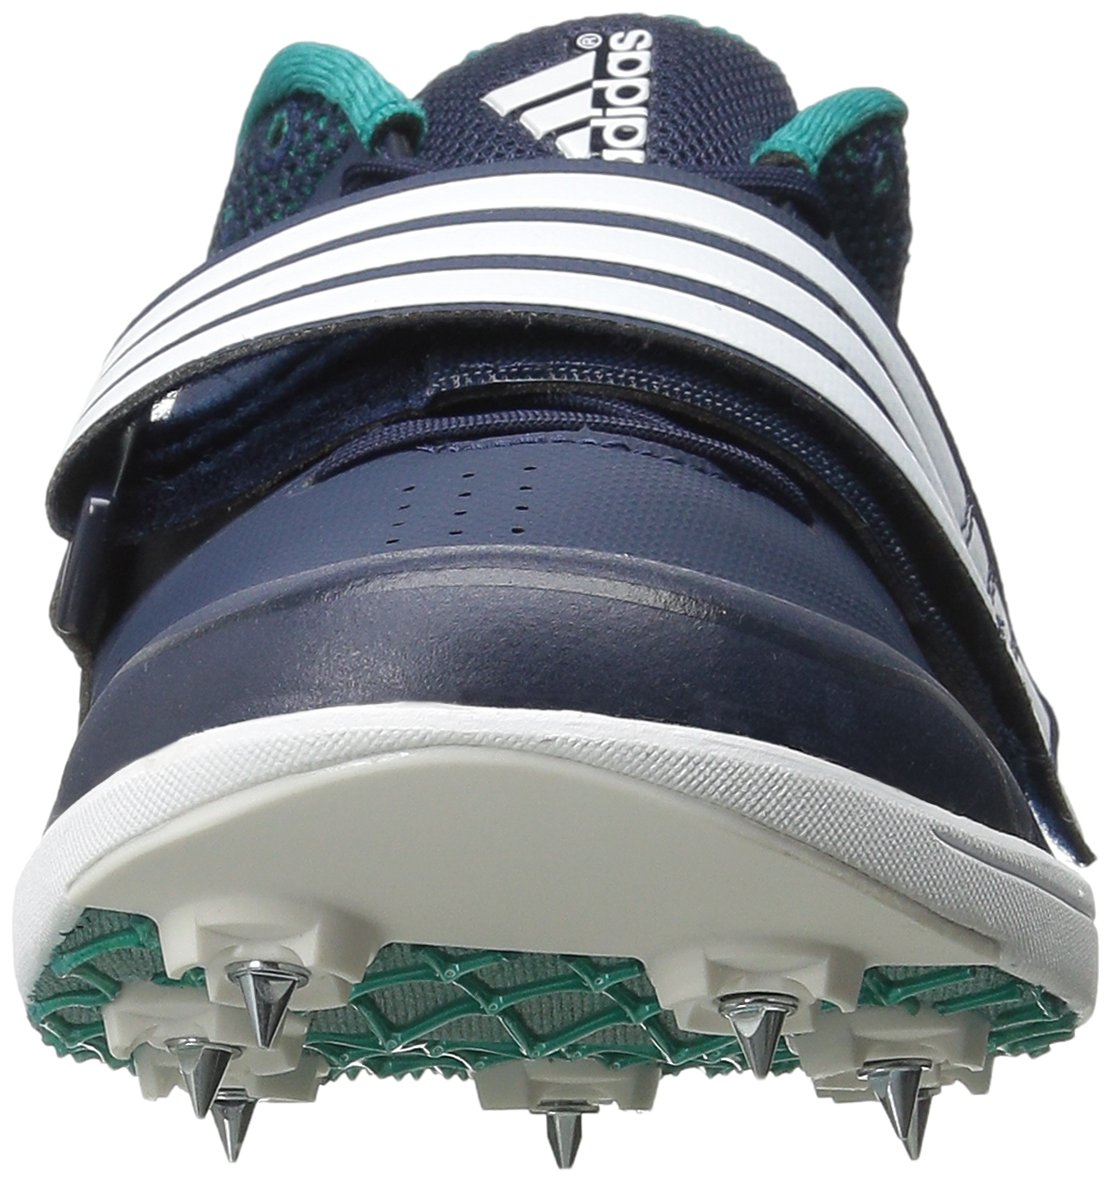 adidas Performance Women's Adizero TJ/PV Running Shoe with Spikes,Collegiate Navy/White/Green,14 M US by adidas (Image #4)